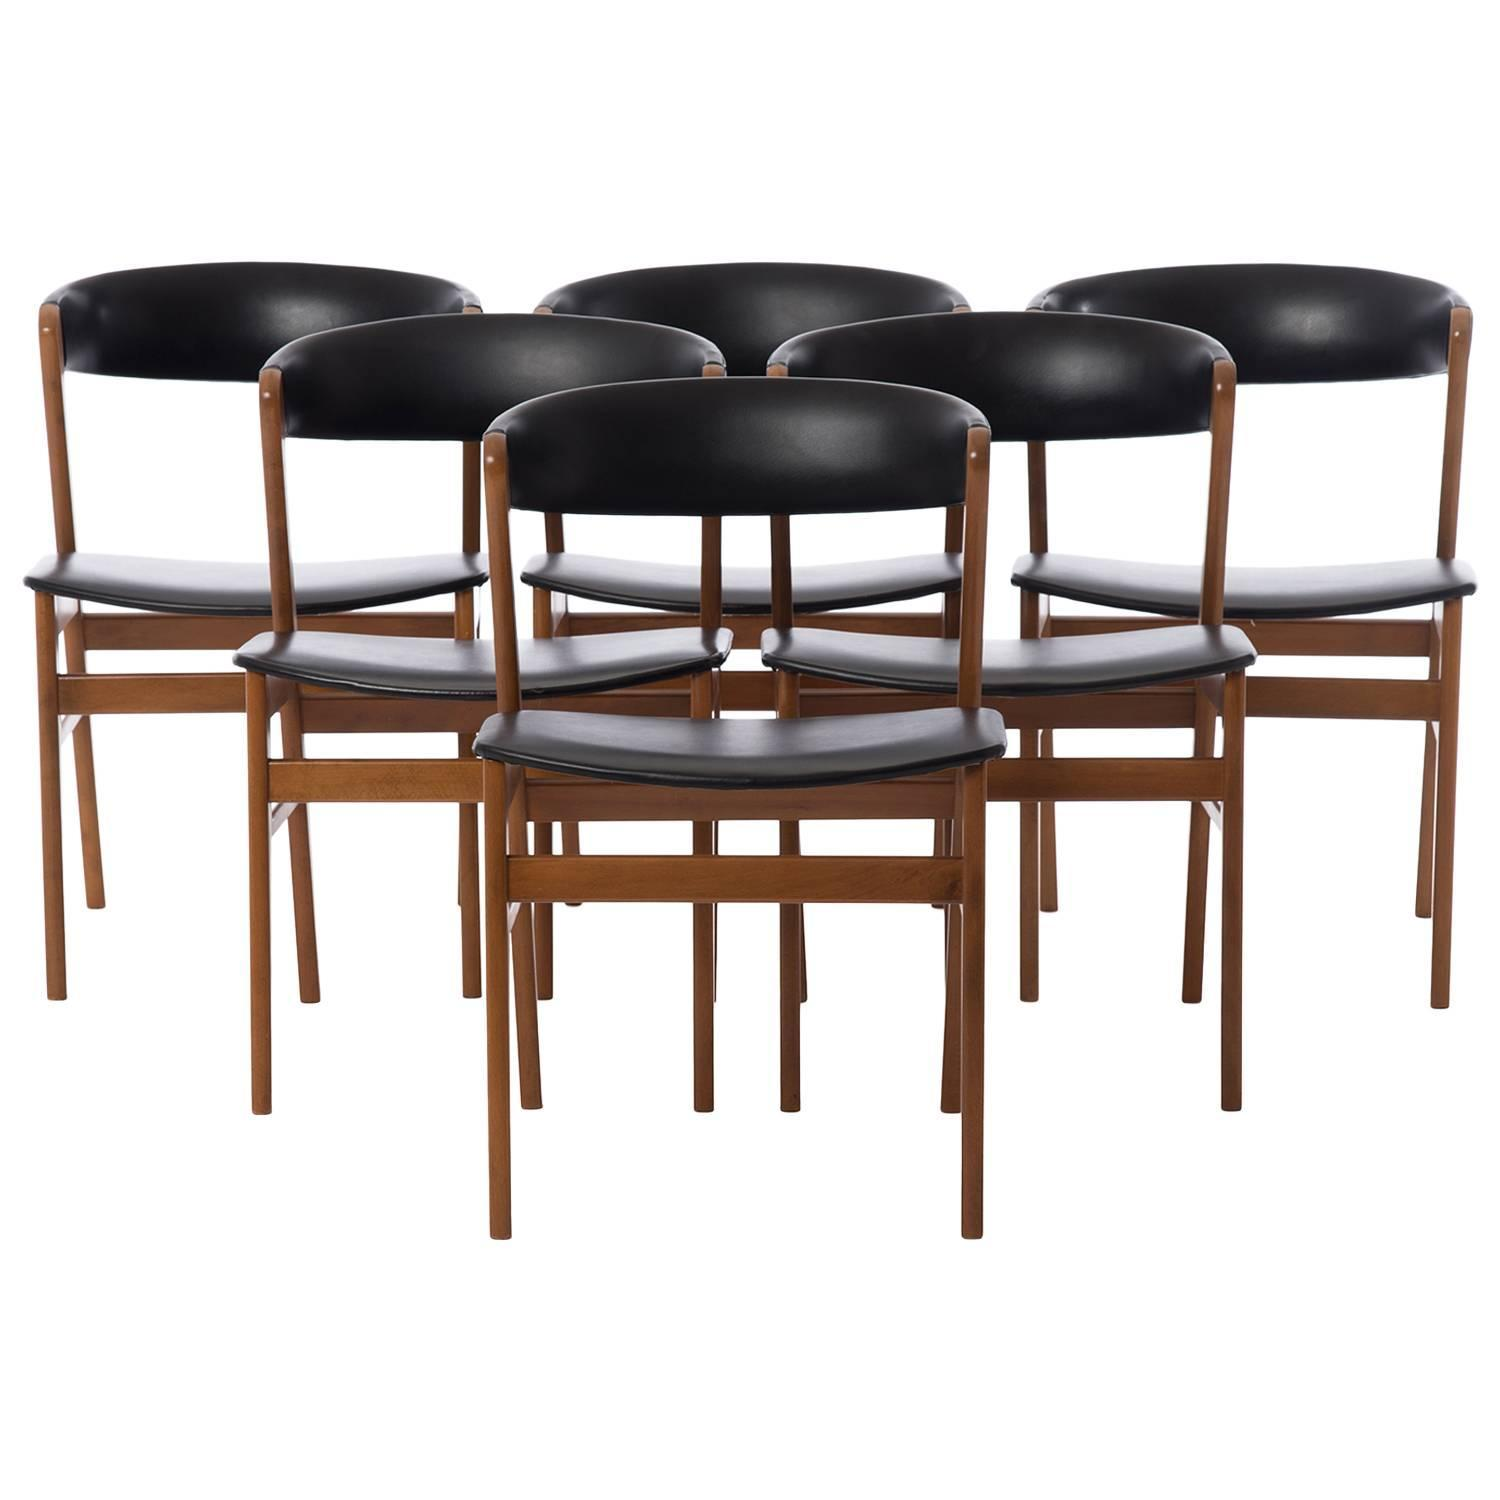 Danish Modern Horseshoe Back Dining Chairs For Sale at 1stdibs